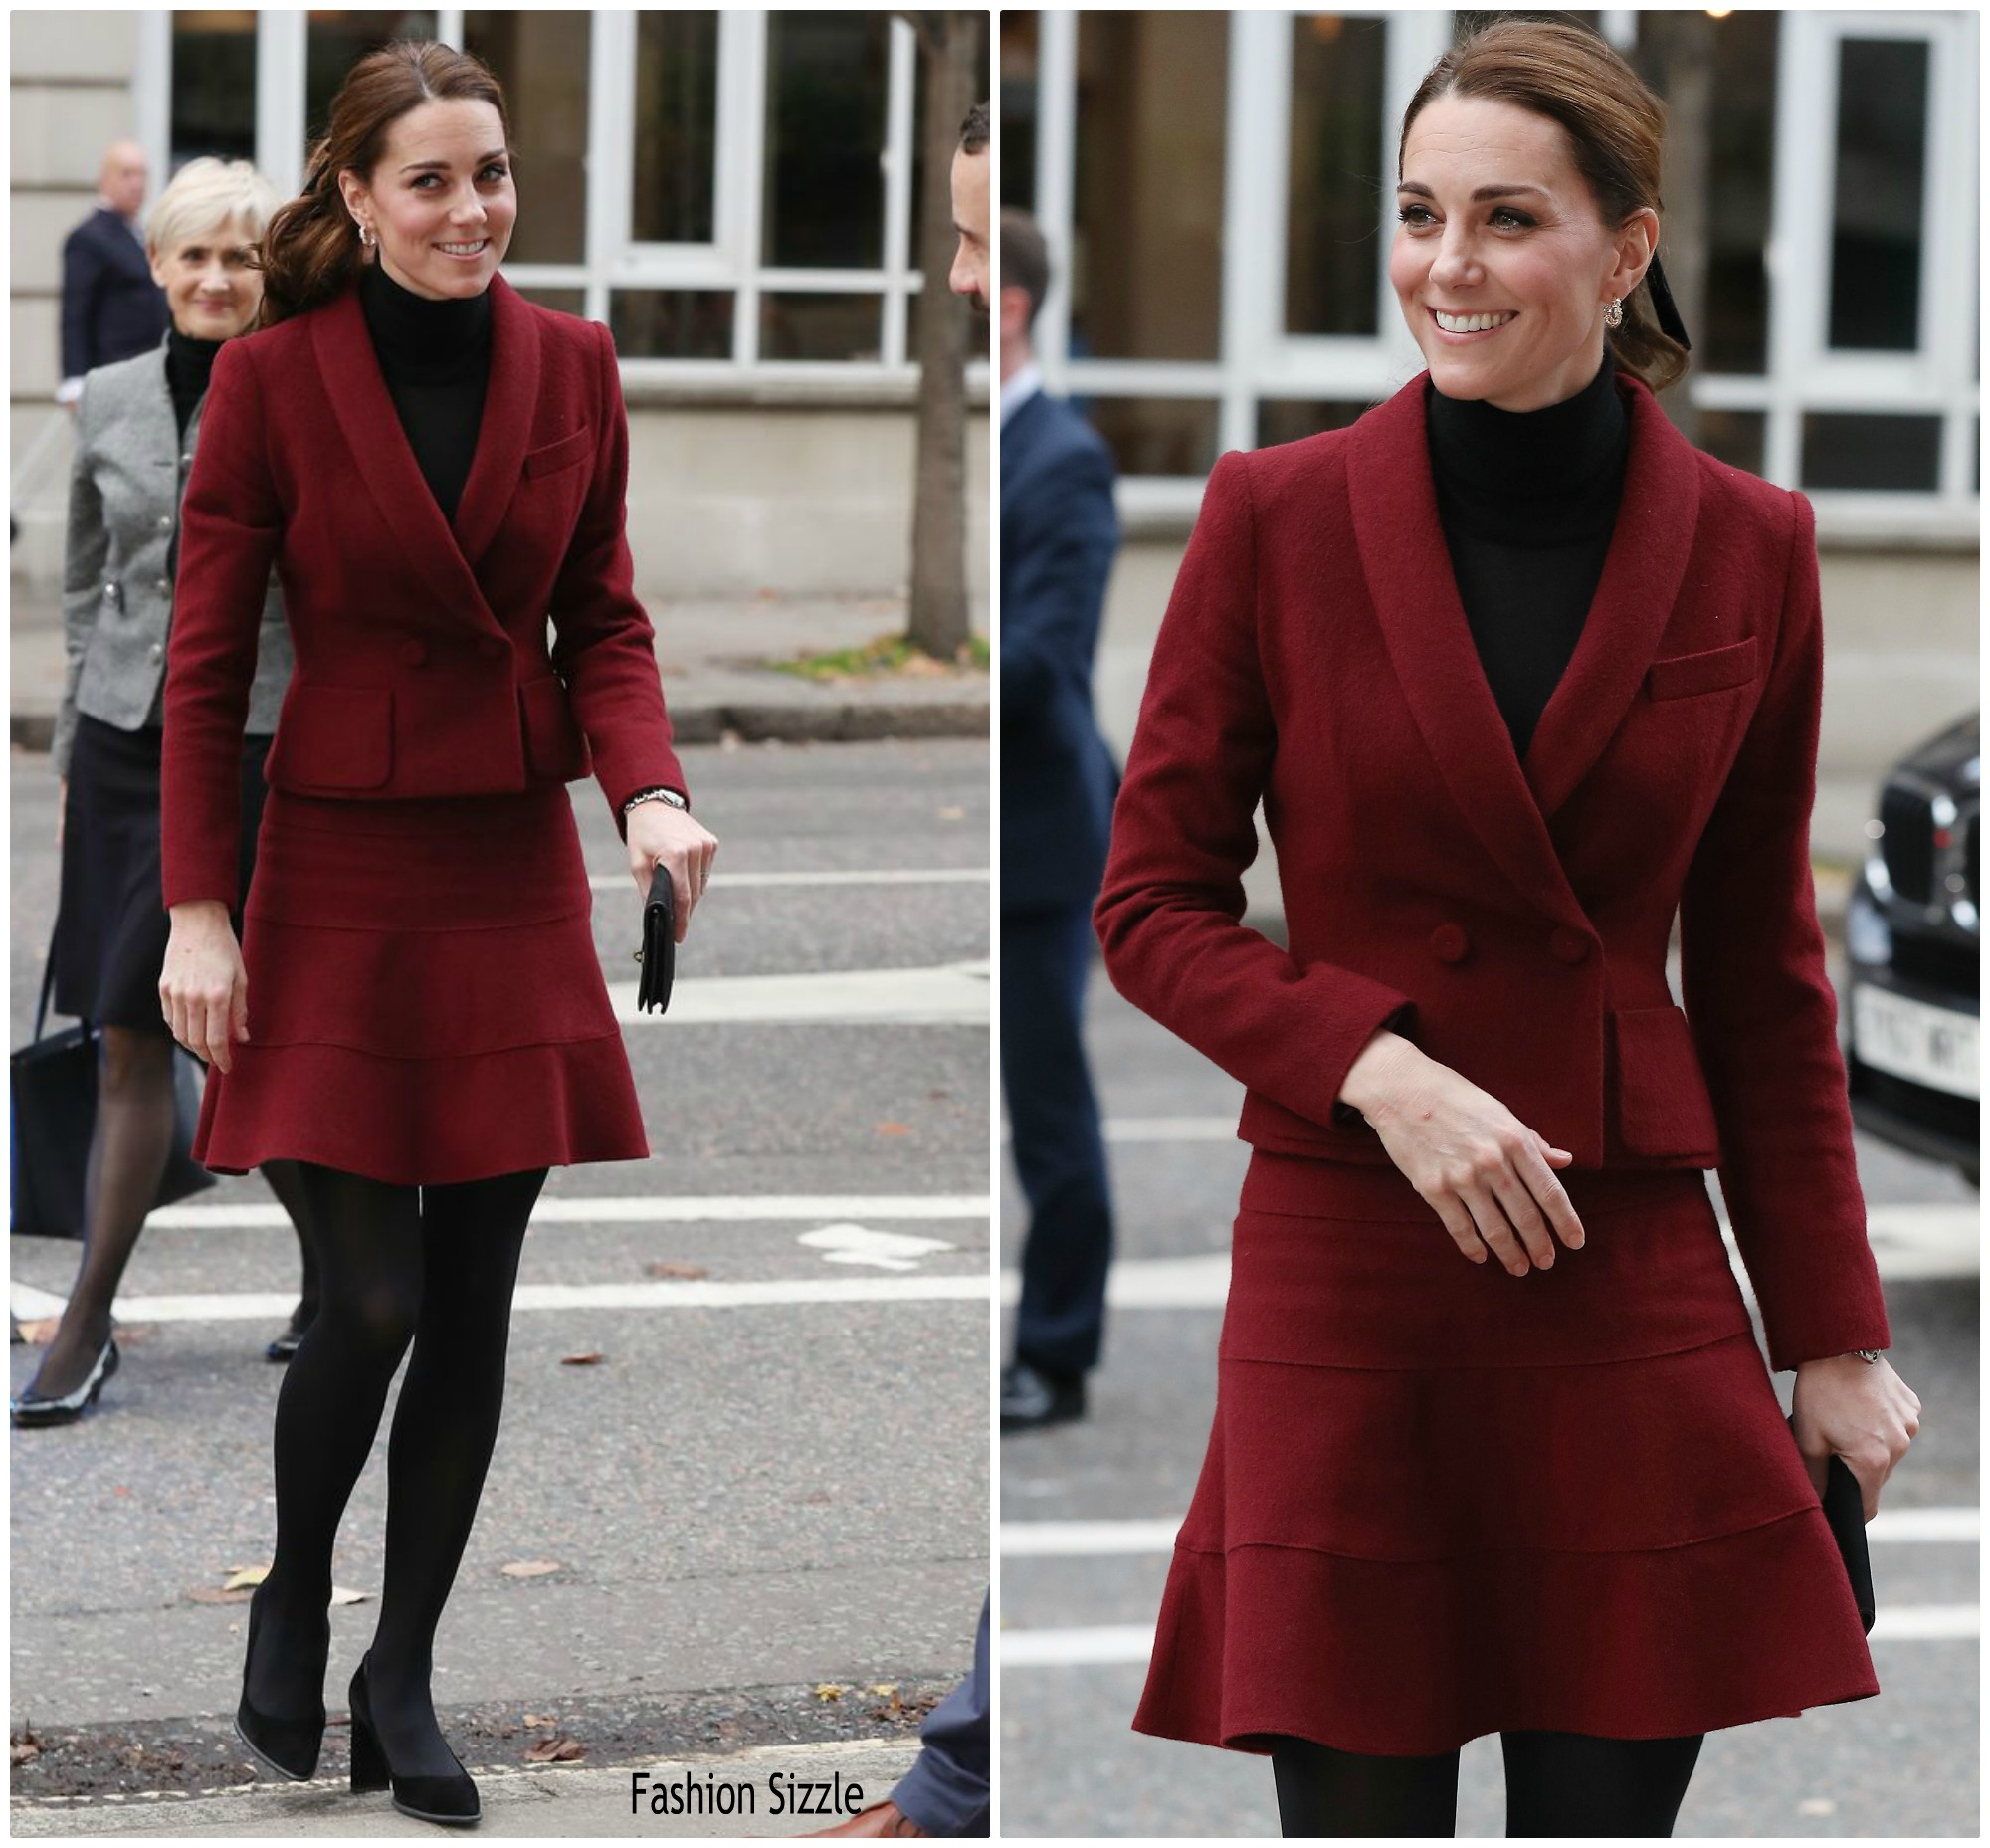 catherine-duchess-of-cambridge-in-paule-ka-ucl-developmental-neuroscience-lab-visit